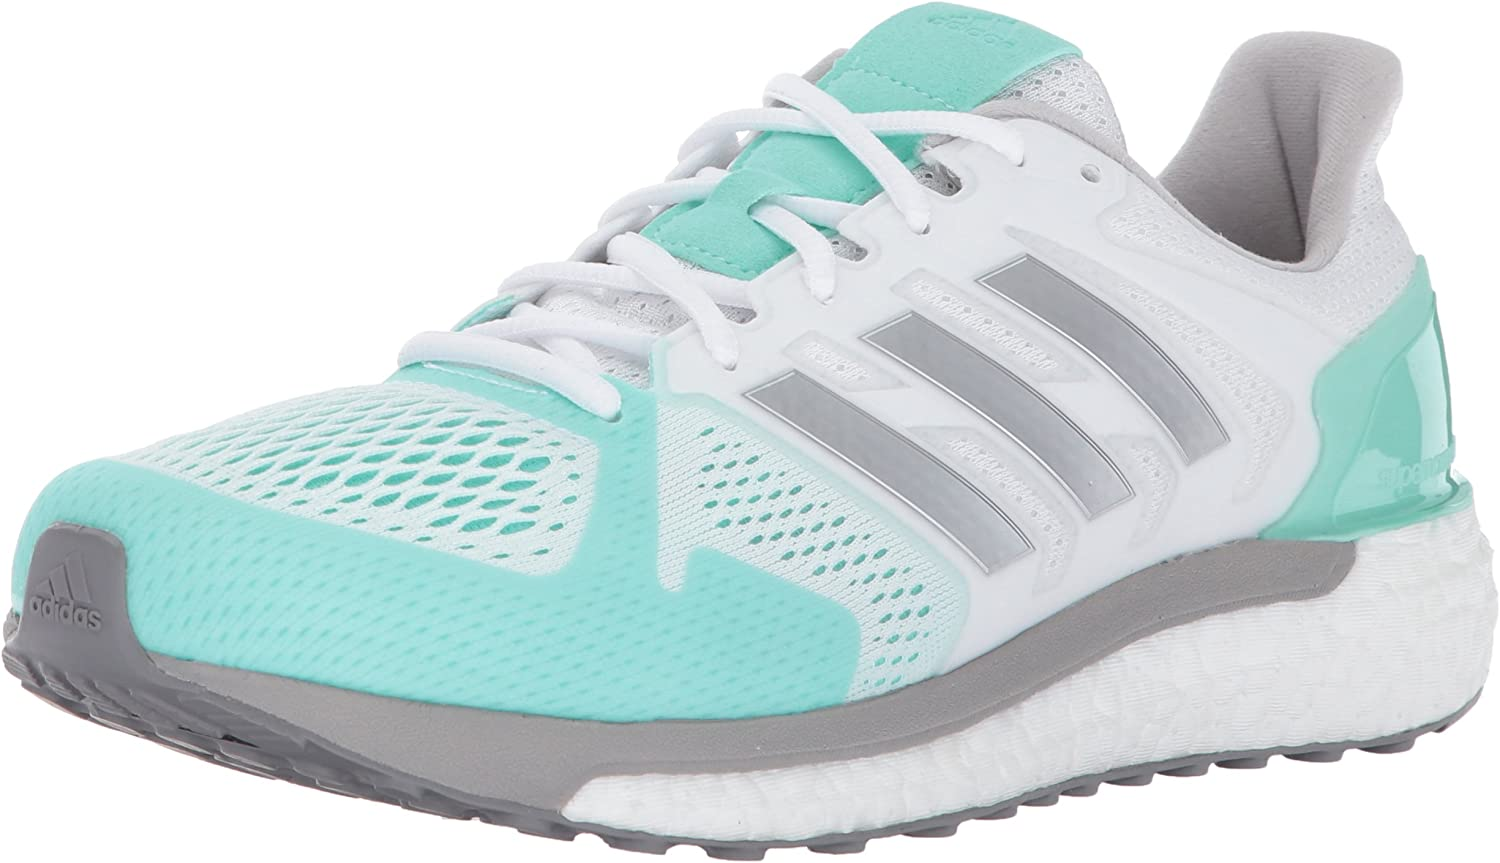 Adidas Women's Supernova st w Running shoes